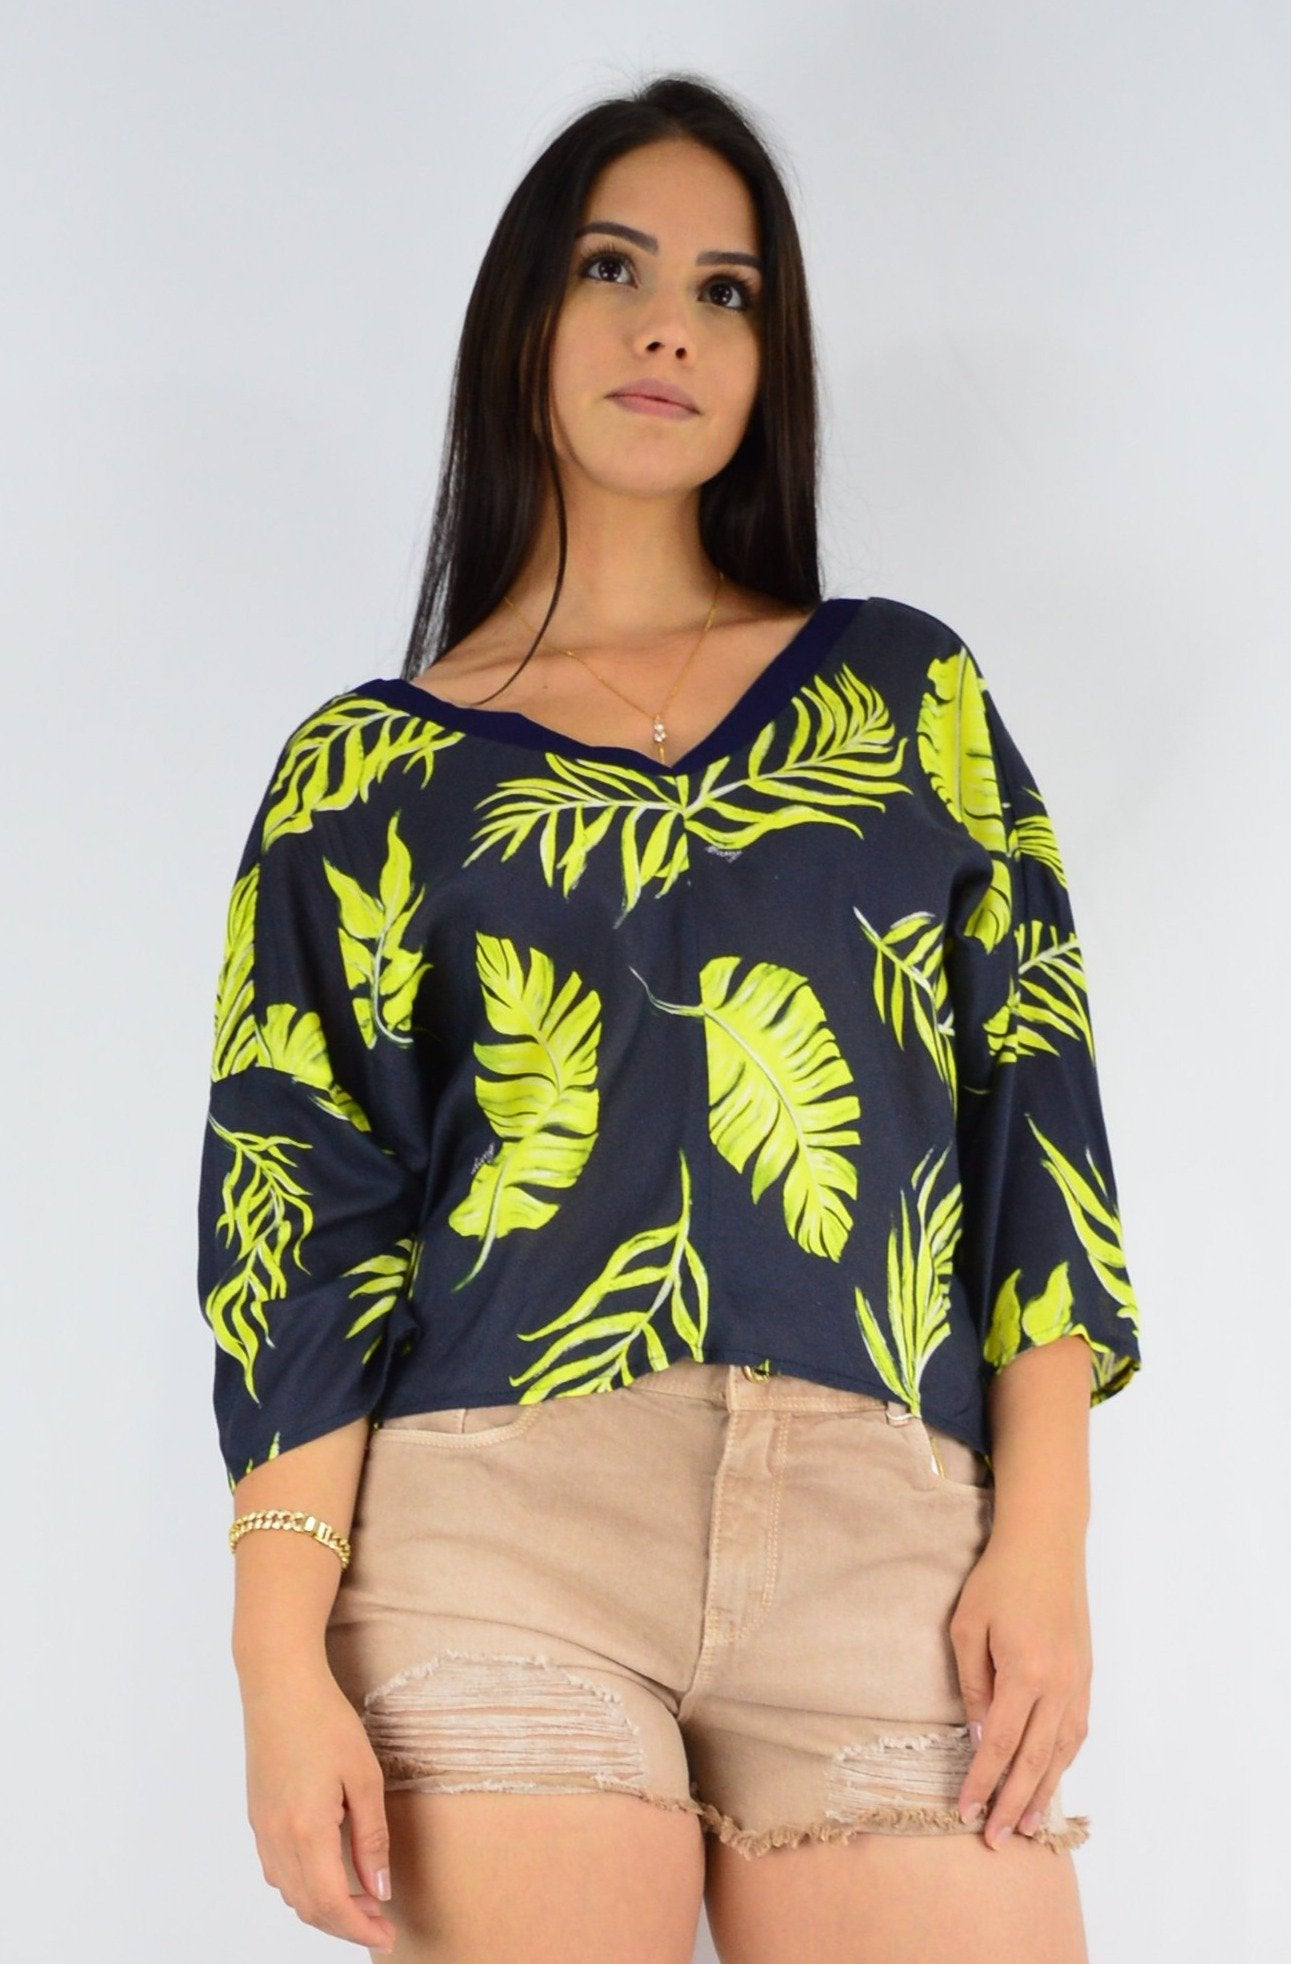 ACTIVE WEAR-PRINTED BLACK AND YELLOW GREEN BLOUSE